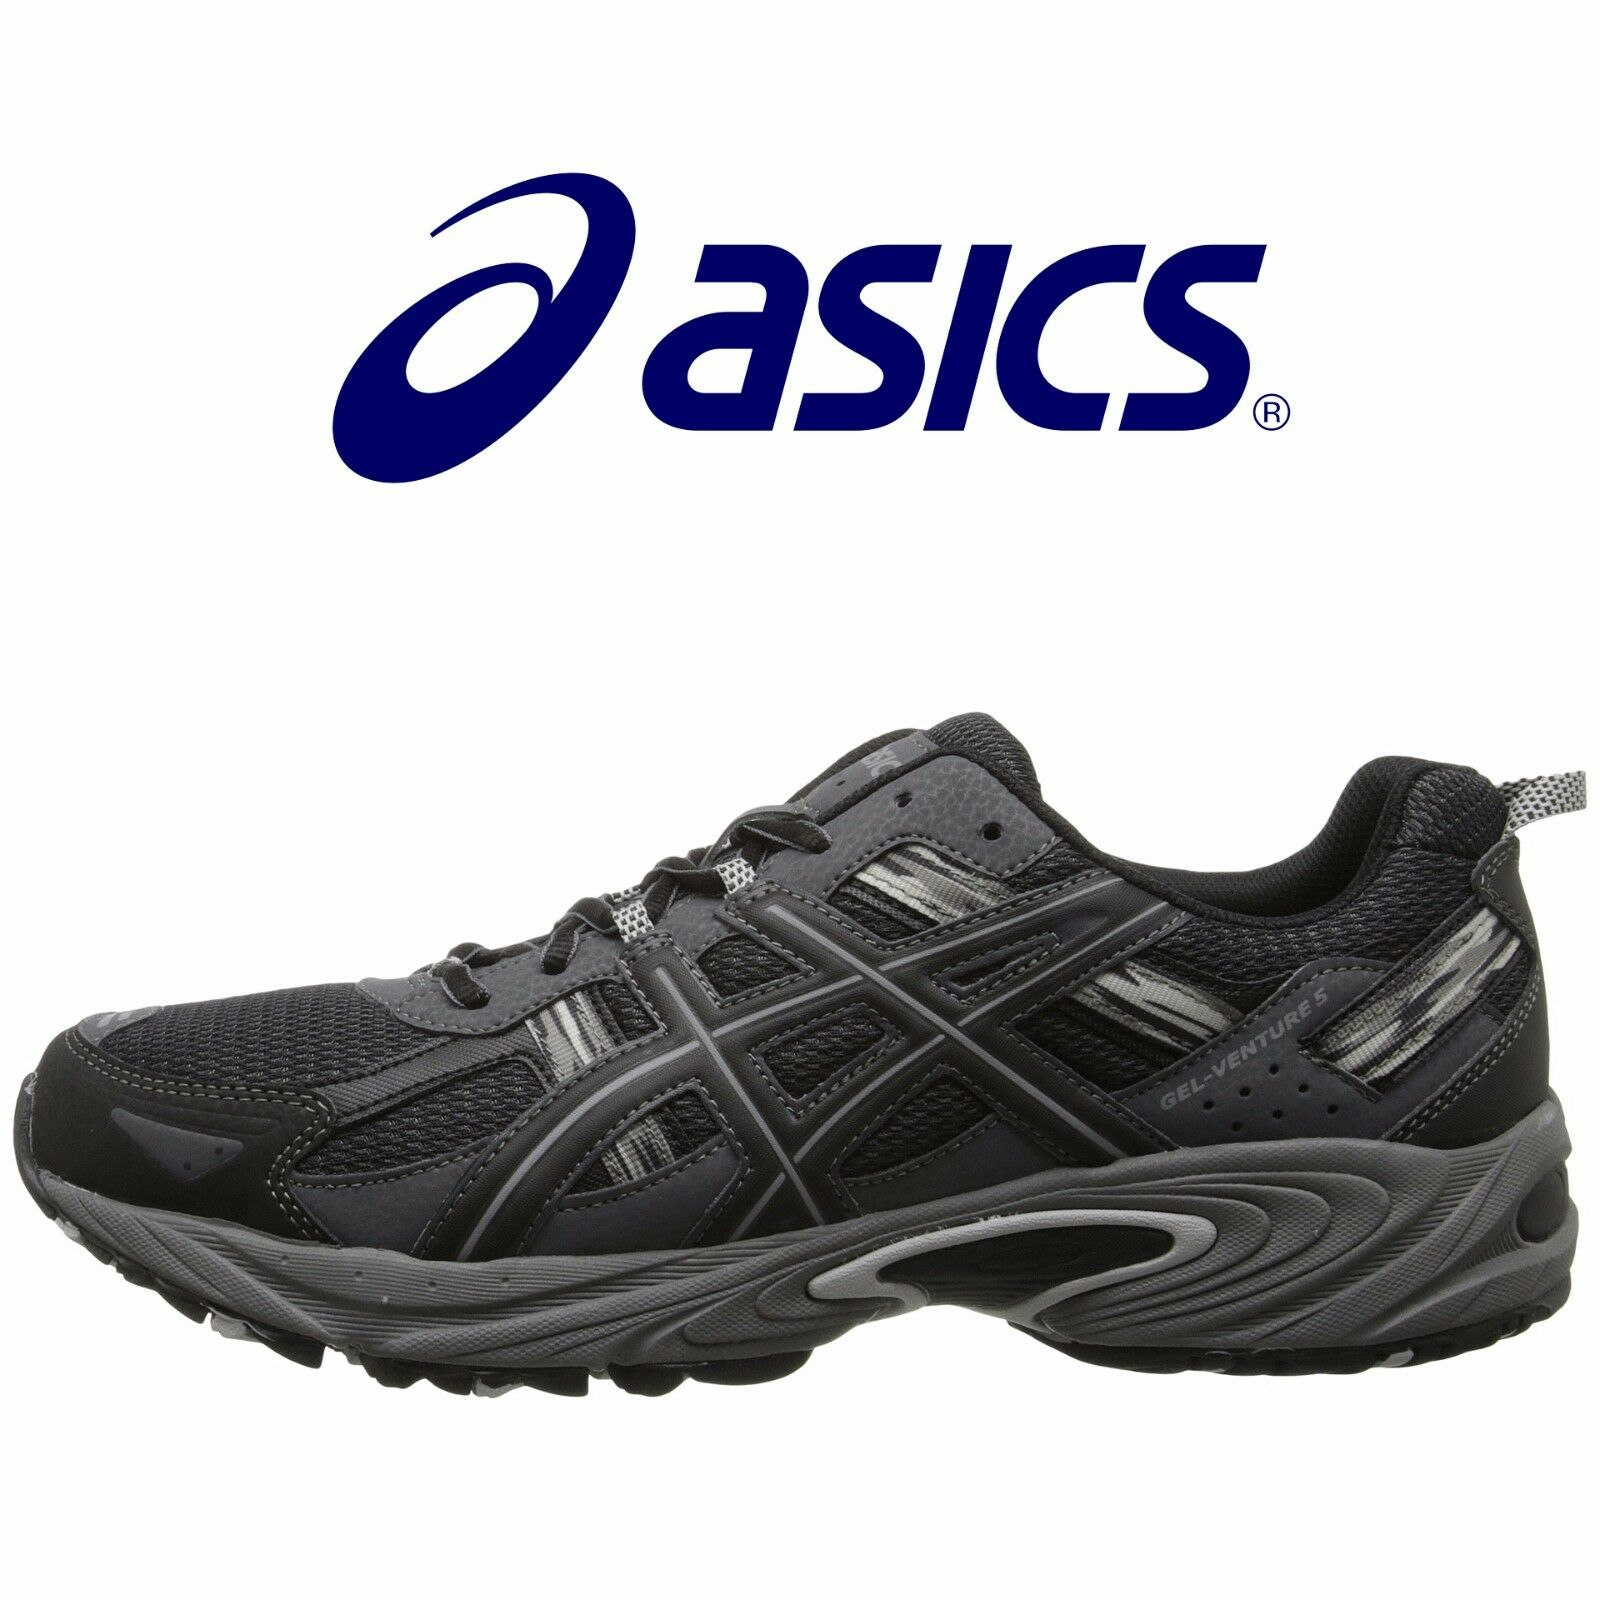 Mens ASICS ASICS ASICS GEL Venture 5 Running shoes Black Onyx Charcoal All Sizes NIB 1aade0